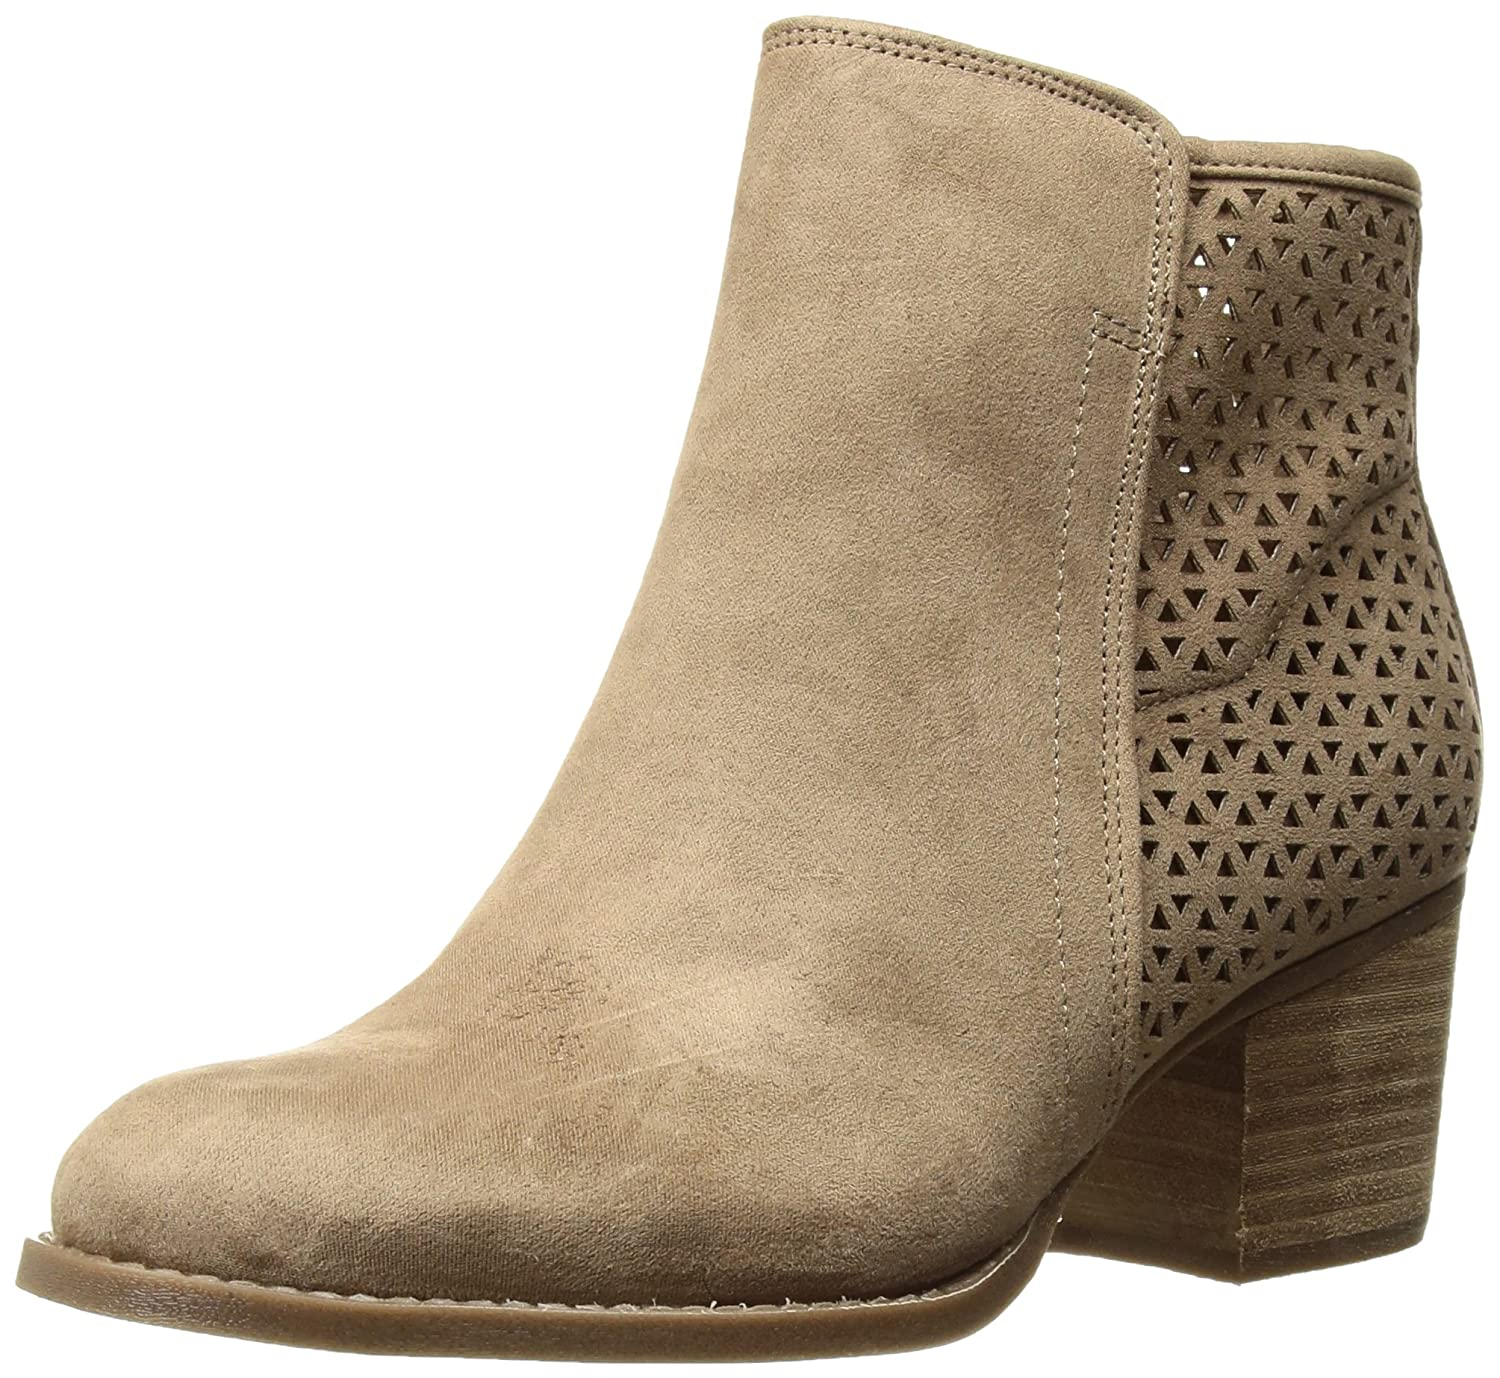 Madden Girl Women's Fayth Ankle Boot B073RVFB6Y 5.5 B(M) US|Sand